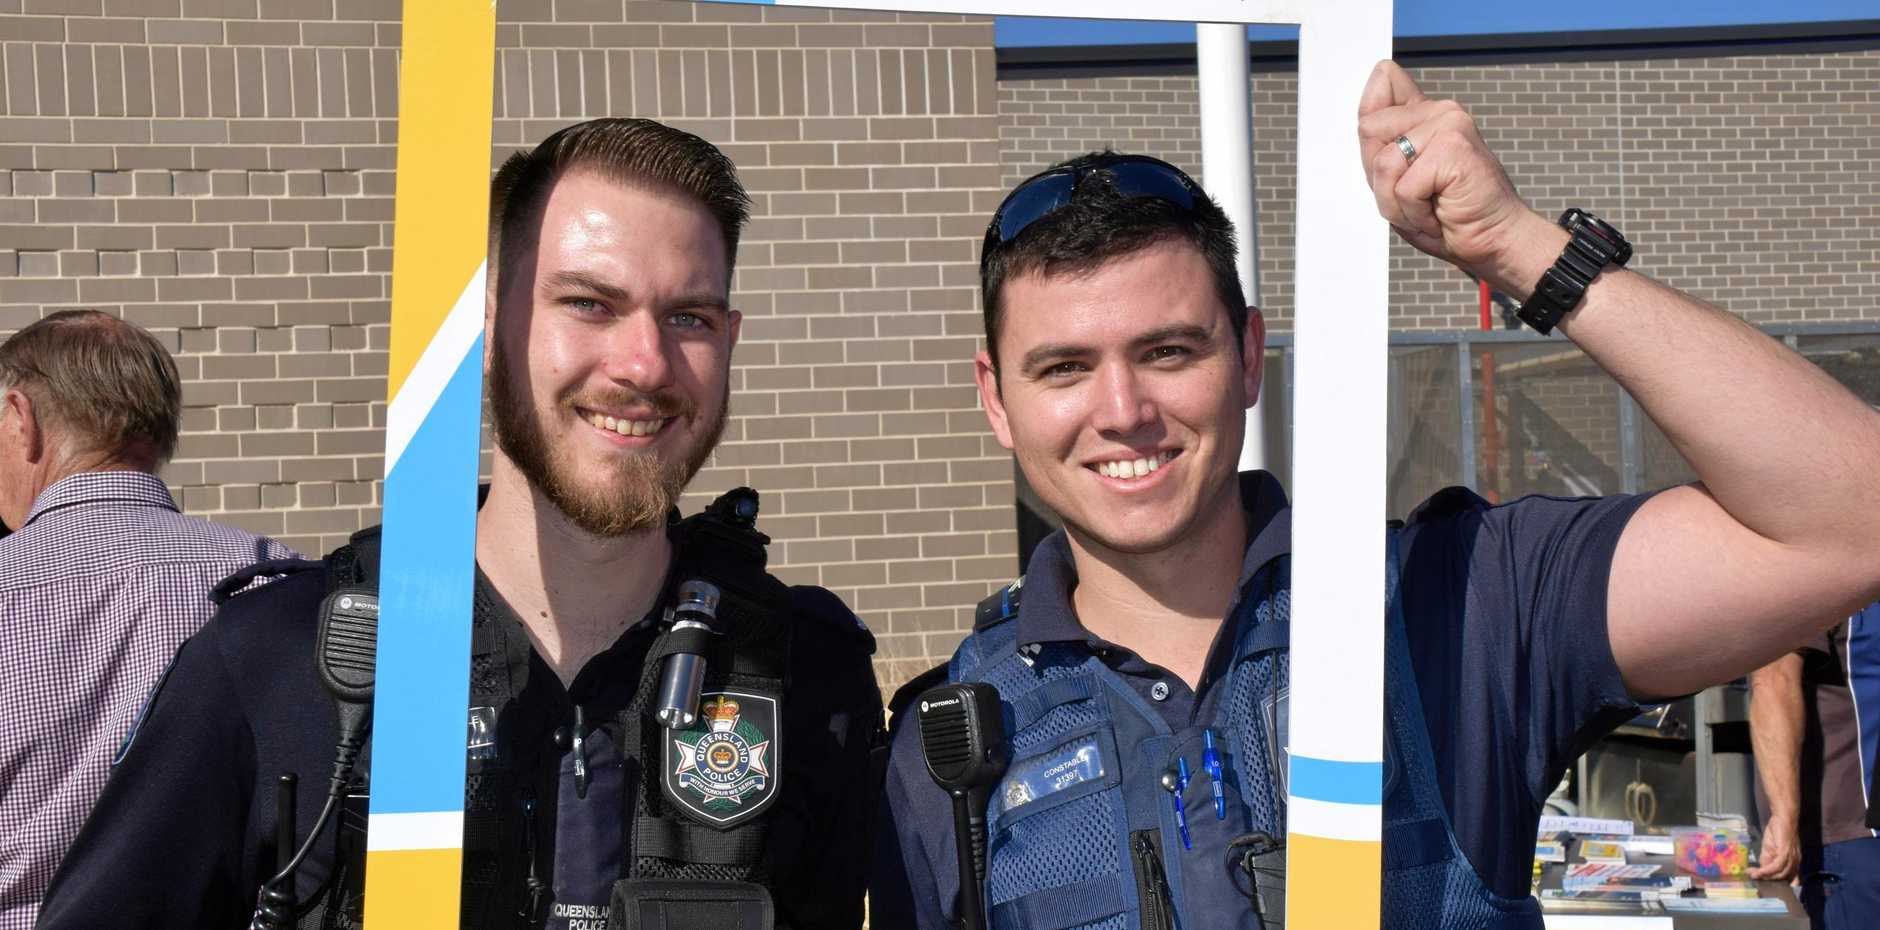 SNAPPED: Constables Rhys Golinksi and Rhys Everitt from Kingaroy Police pose to raise awareness for road safety week.